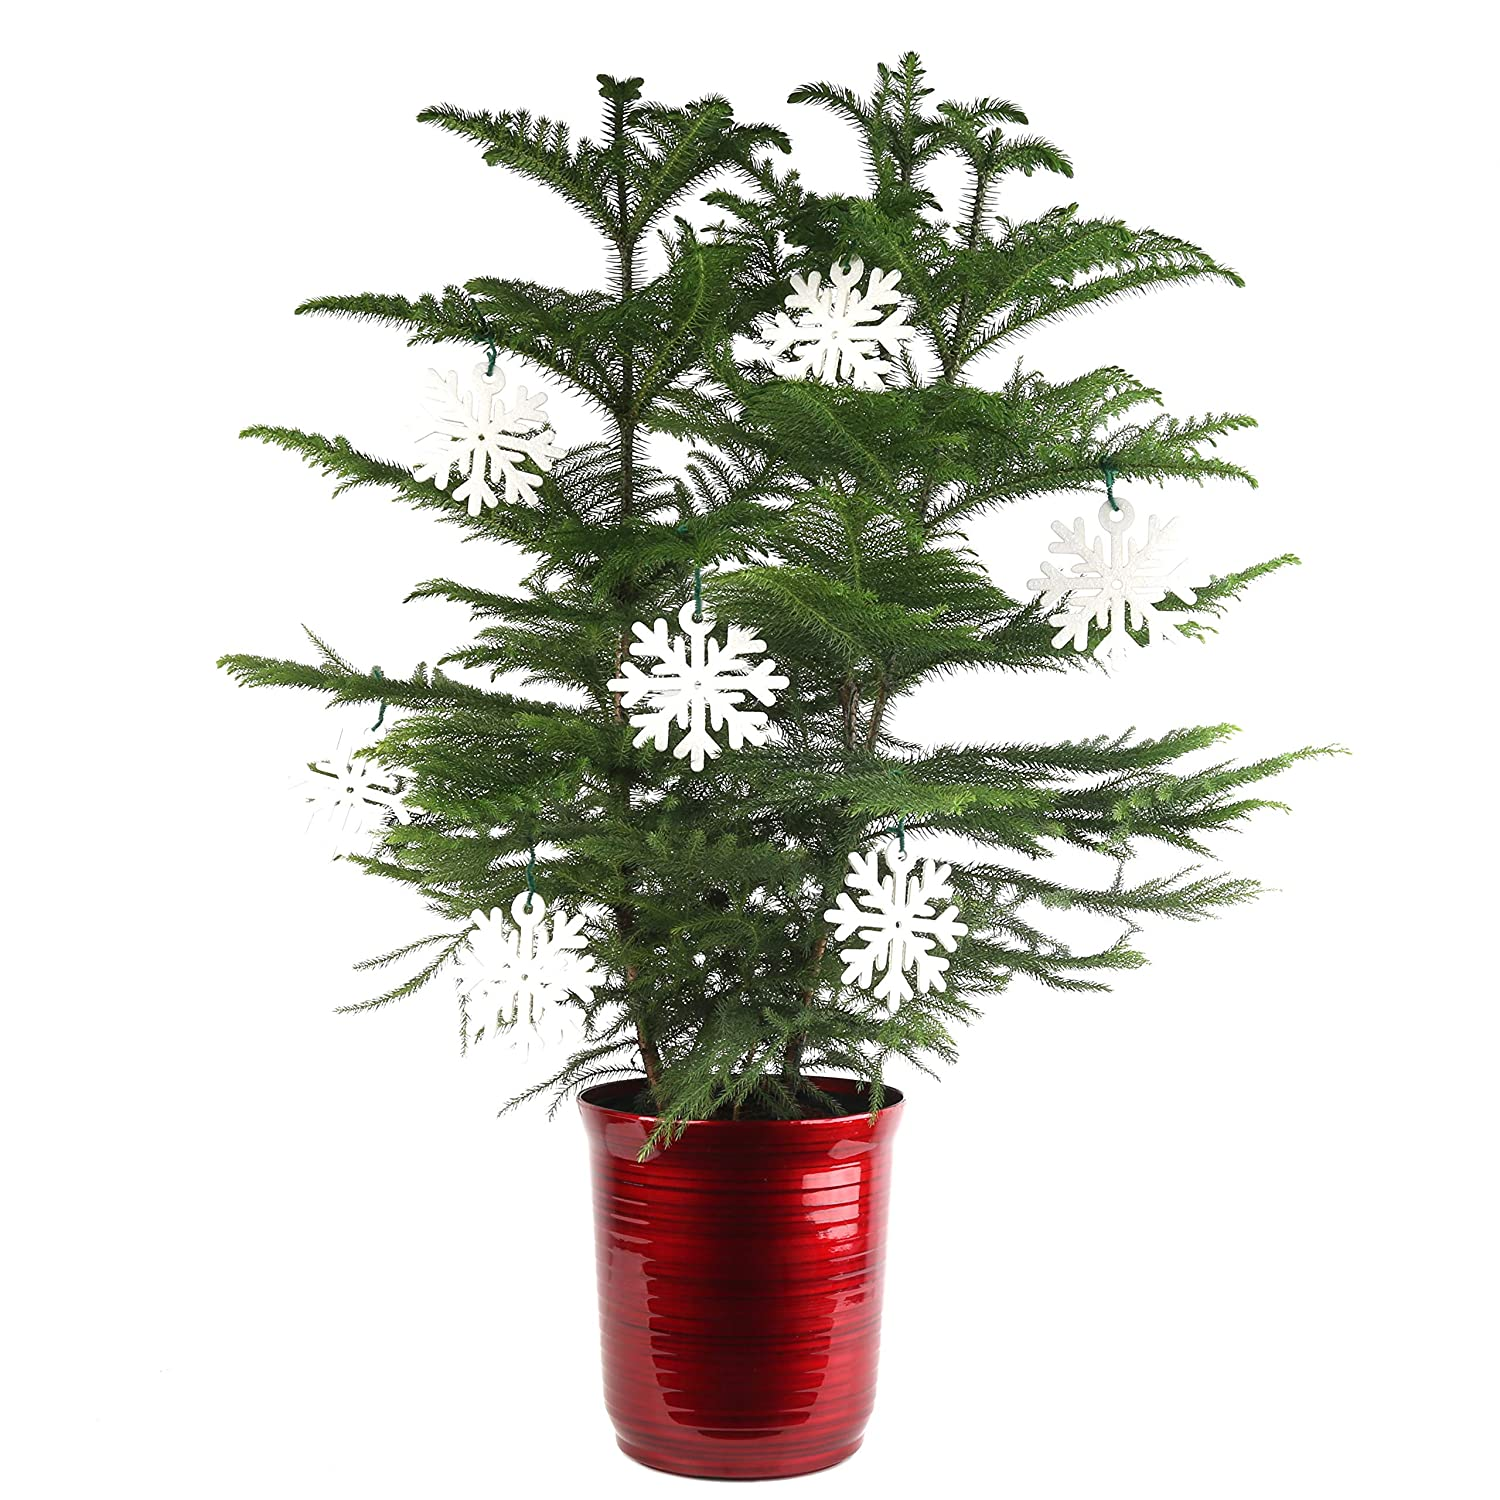 Christmas Trees Norfolk: Tabletop Christmas Trees Advice On Selecting From